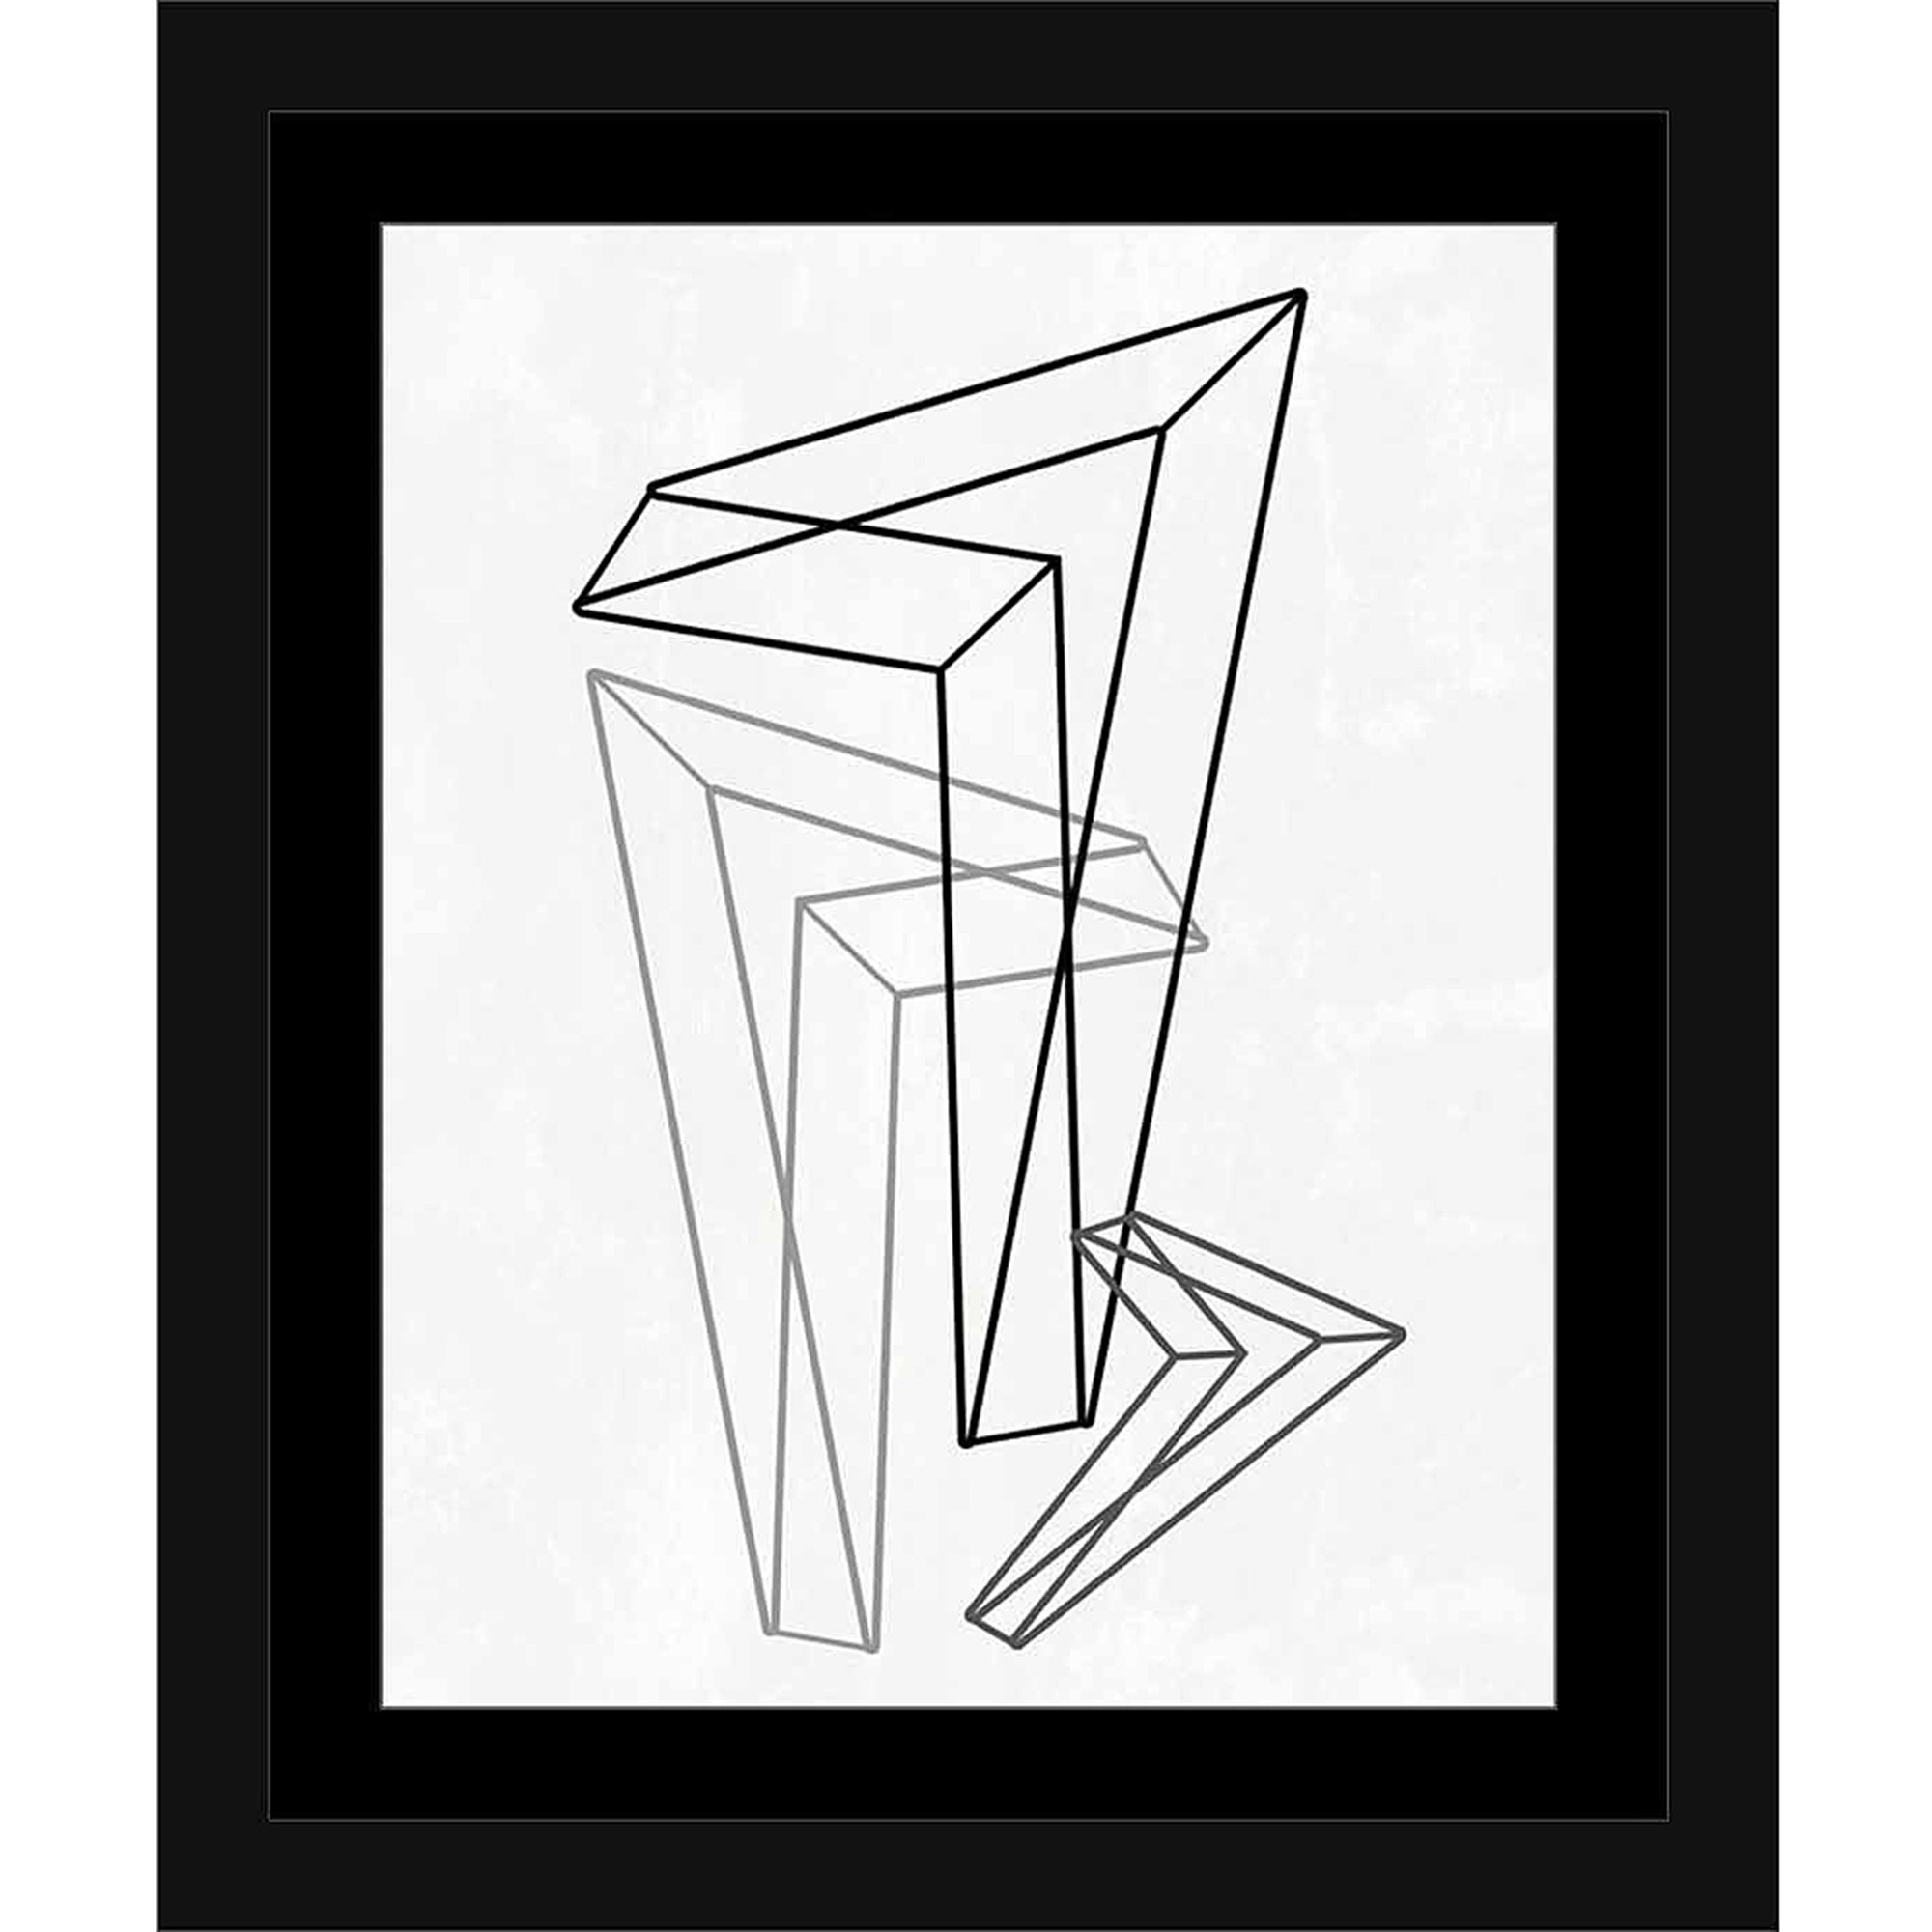 Geometric Triangle Line Drawing Modern Contemporary Trendy Abstract Black & White, Framed... by Circle Graphics